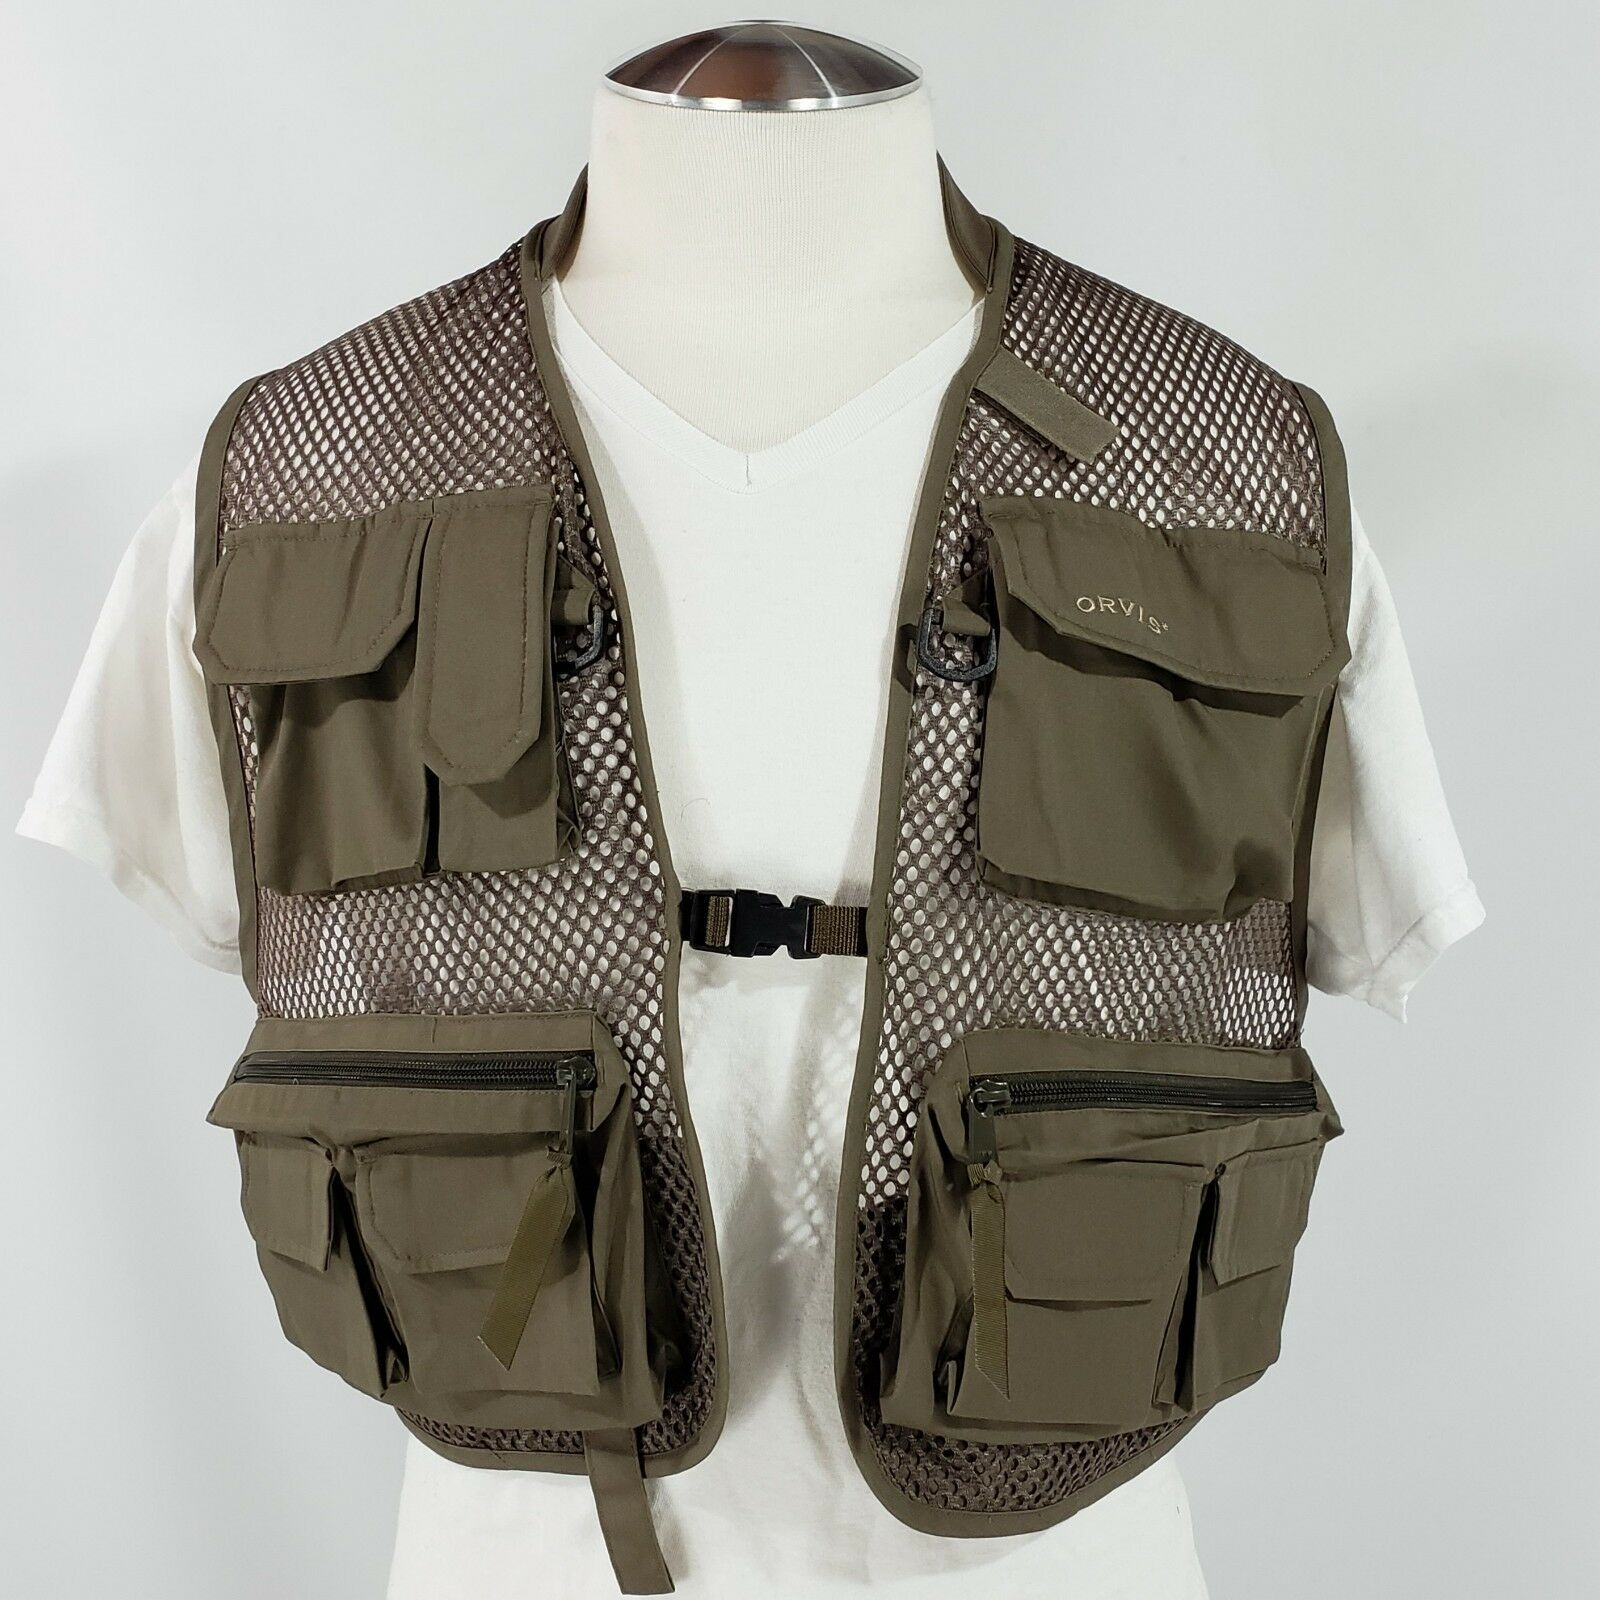 Orvis  Clearwater Fly Fishing Mesh Vest Olive LKNW Size Medium  best fashion